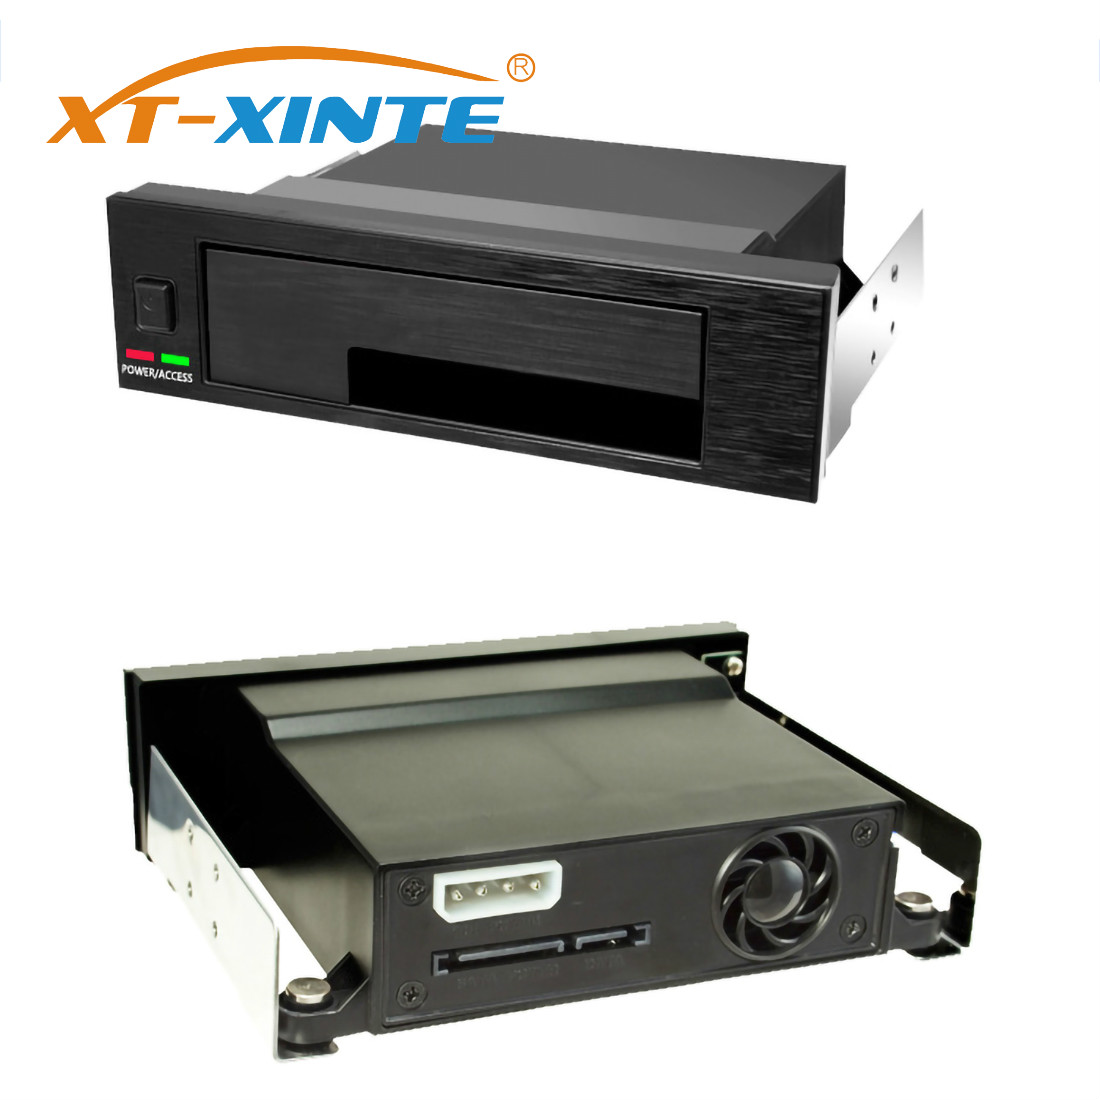 XT-XINTE SSD Storage Box Internal Single Bay Tray-Less Mobile Rack Enclosure LED Indicator Hot-swap For 2.5 3.5 Inch SATA